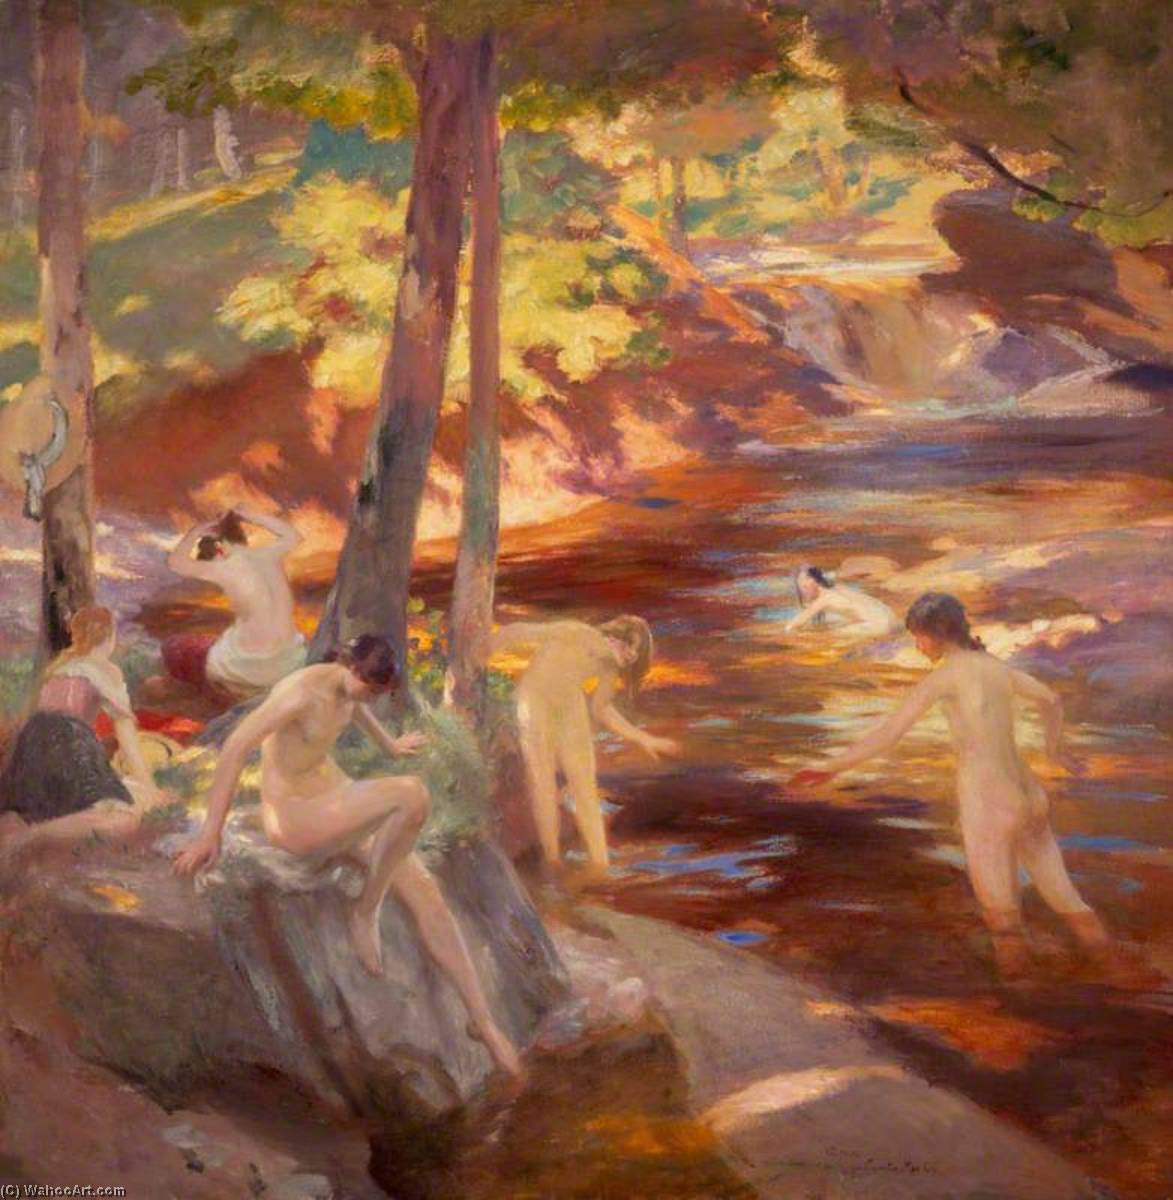 The Bathing Pool, Oil On Canvas by Charles Hodge Mackie